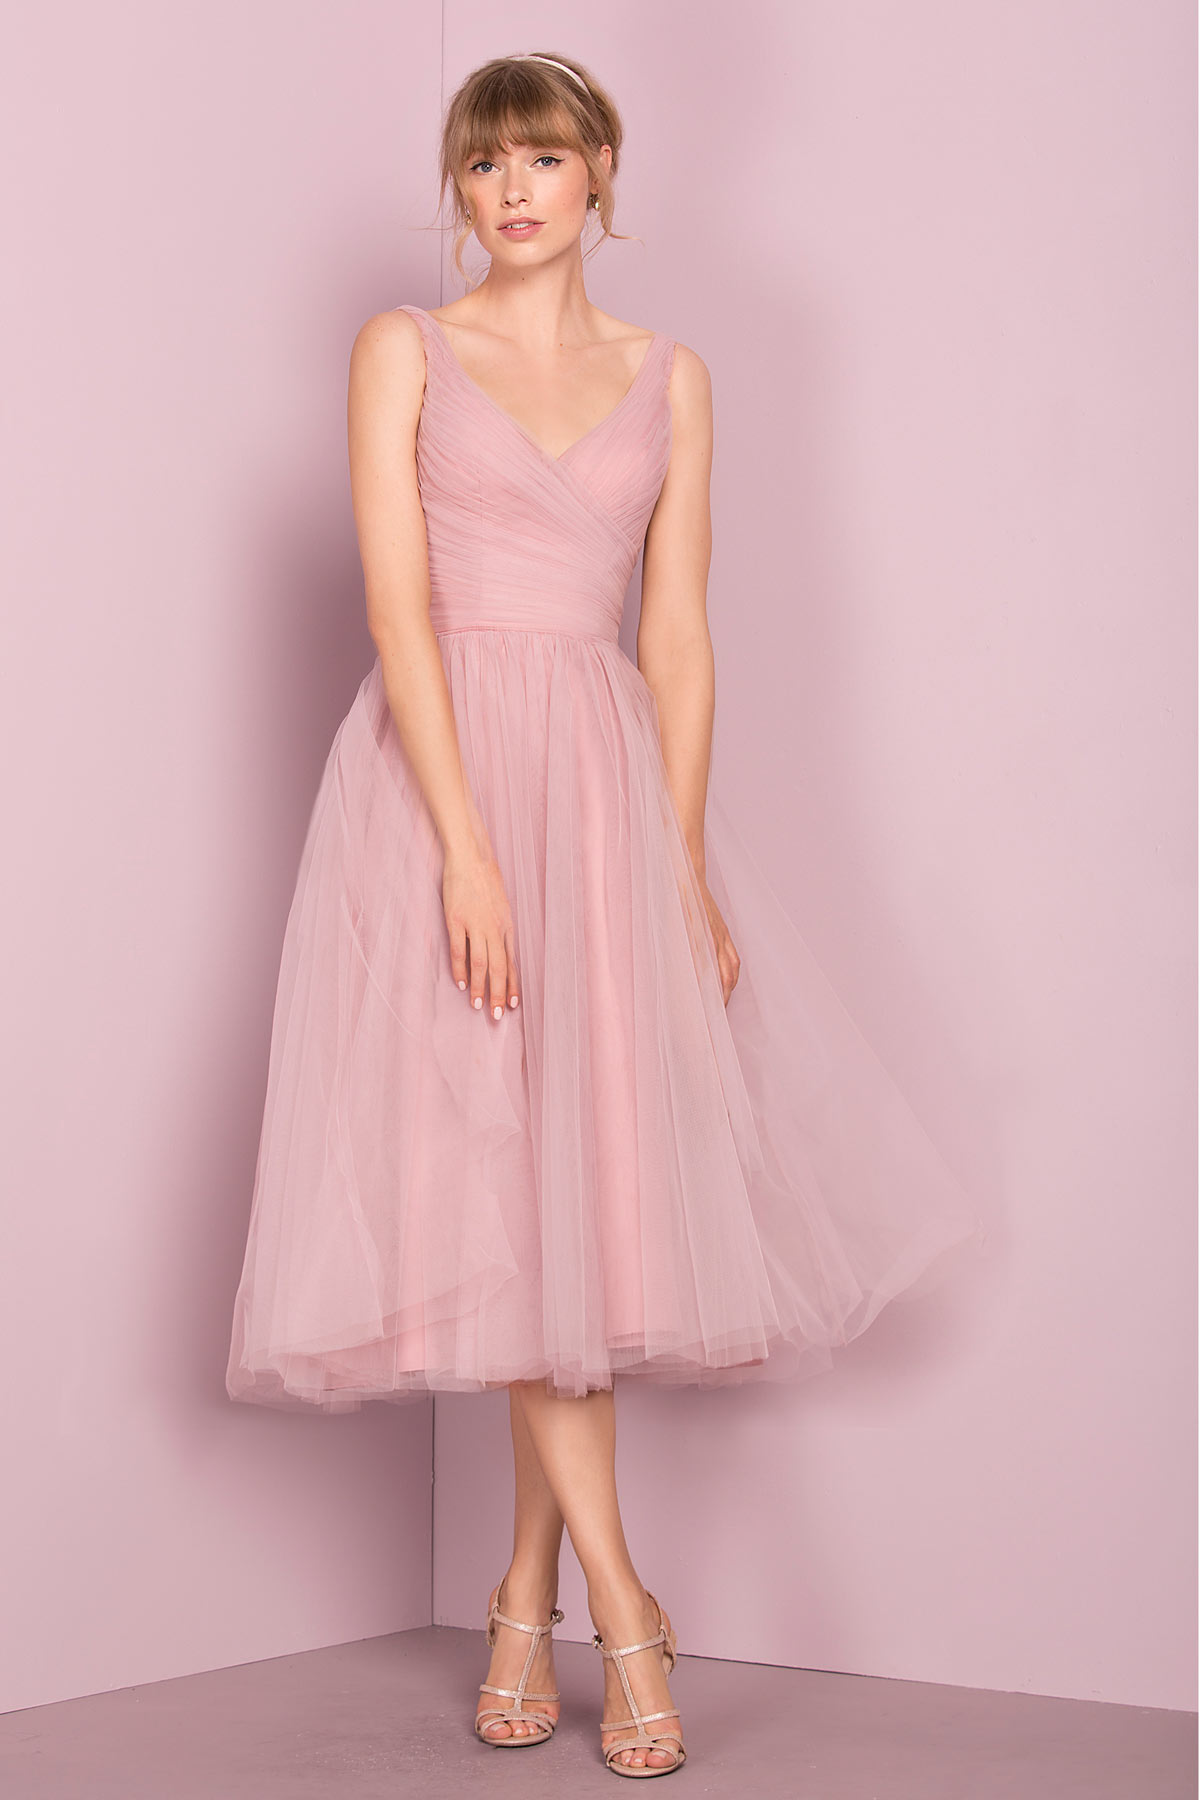 robe de cocktail mi-longue rose simple encolure v